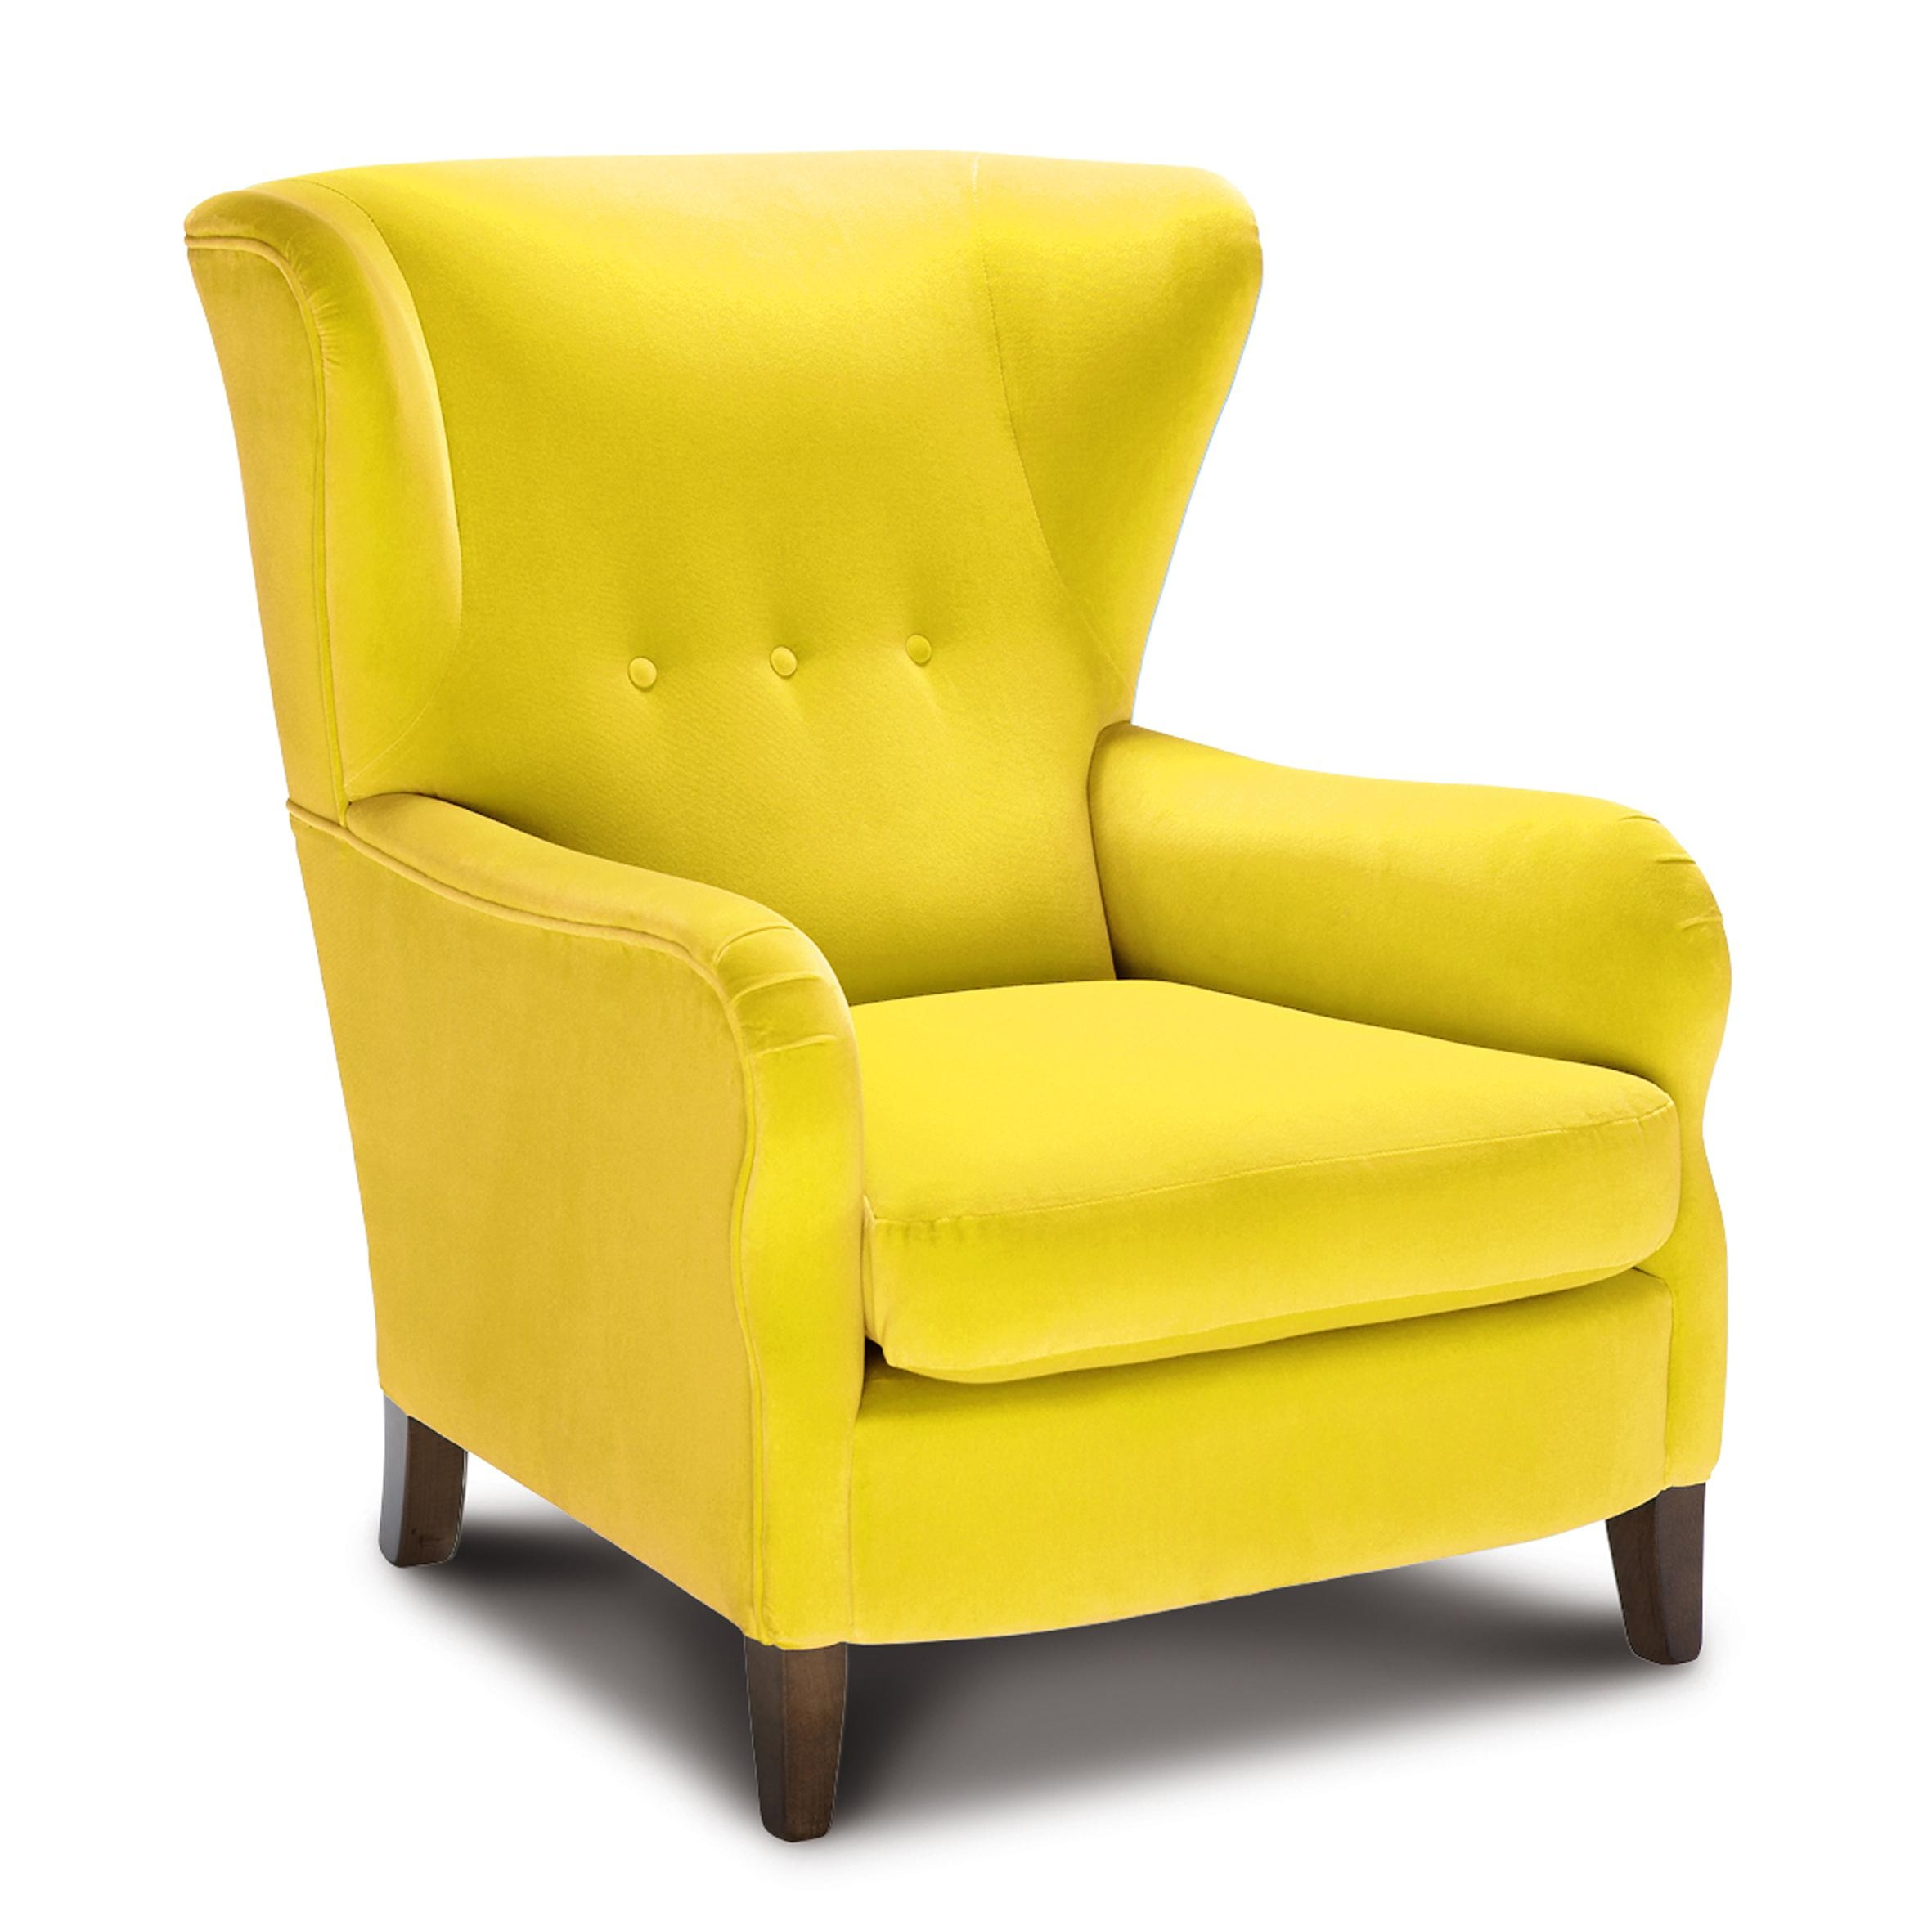 Furniture Home : Luxury Modern Sofas And Chairs Marvelous Photo Of Intended For Contemporary Sofa Chairs (Image 12 of 20)